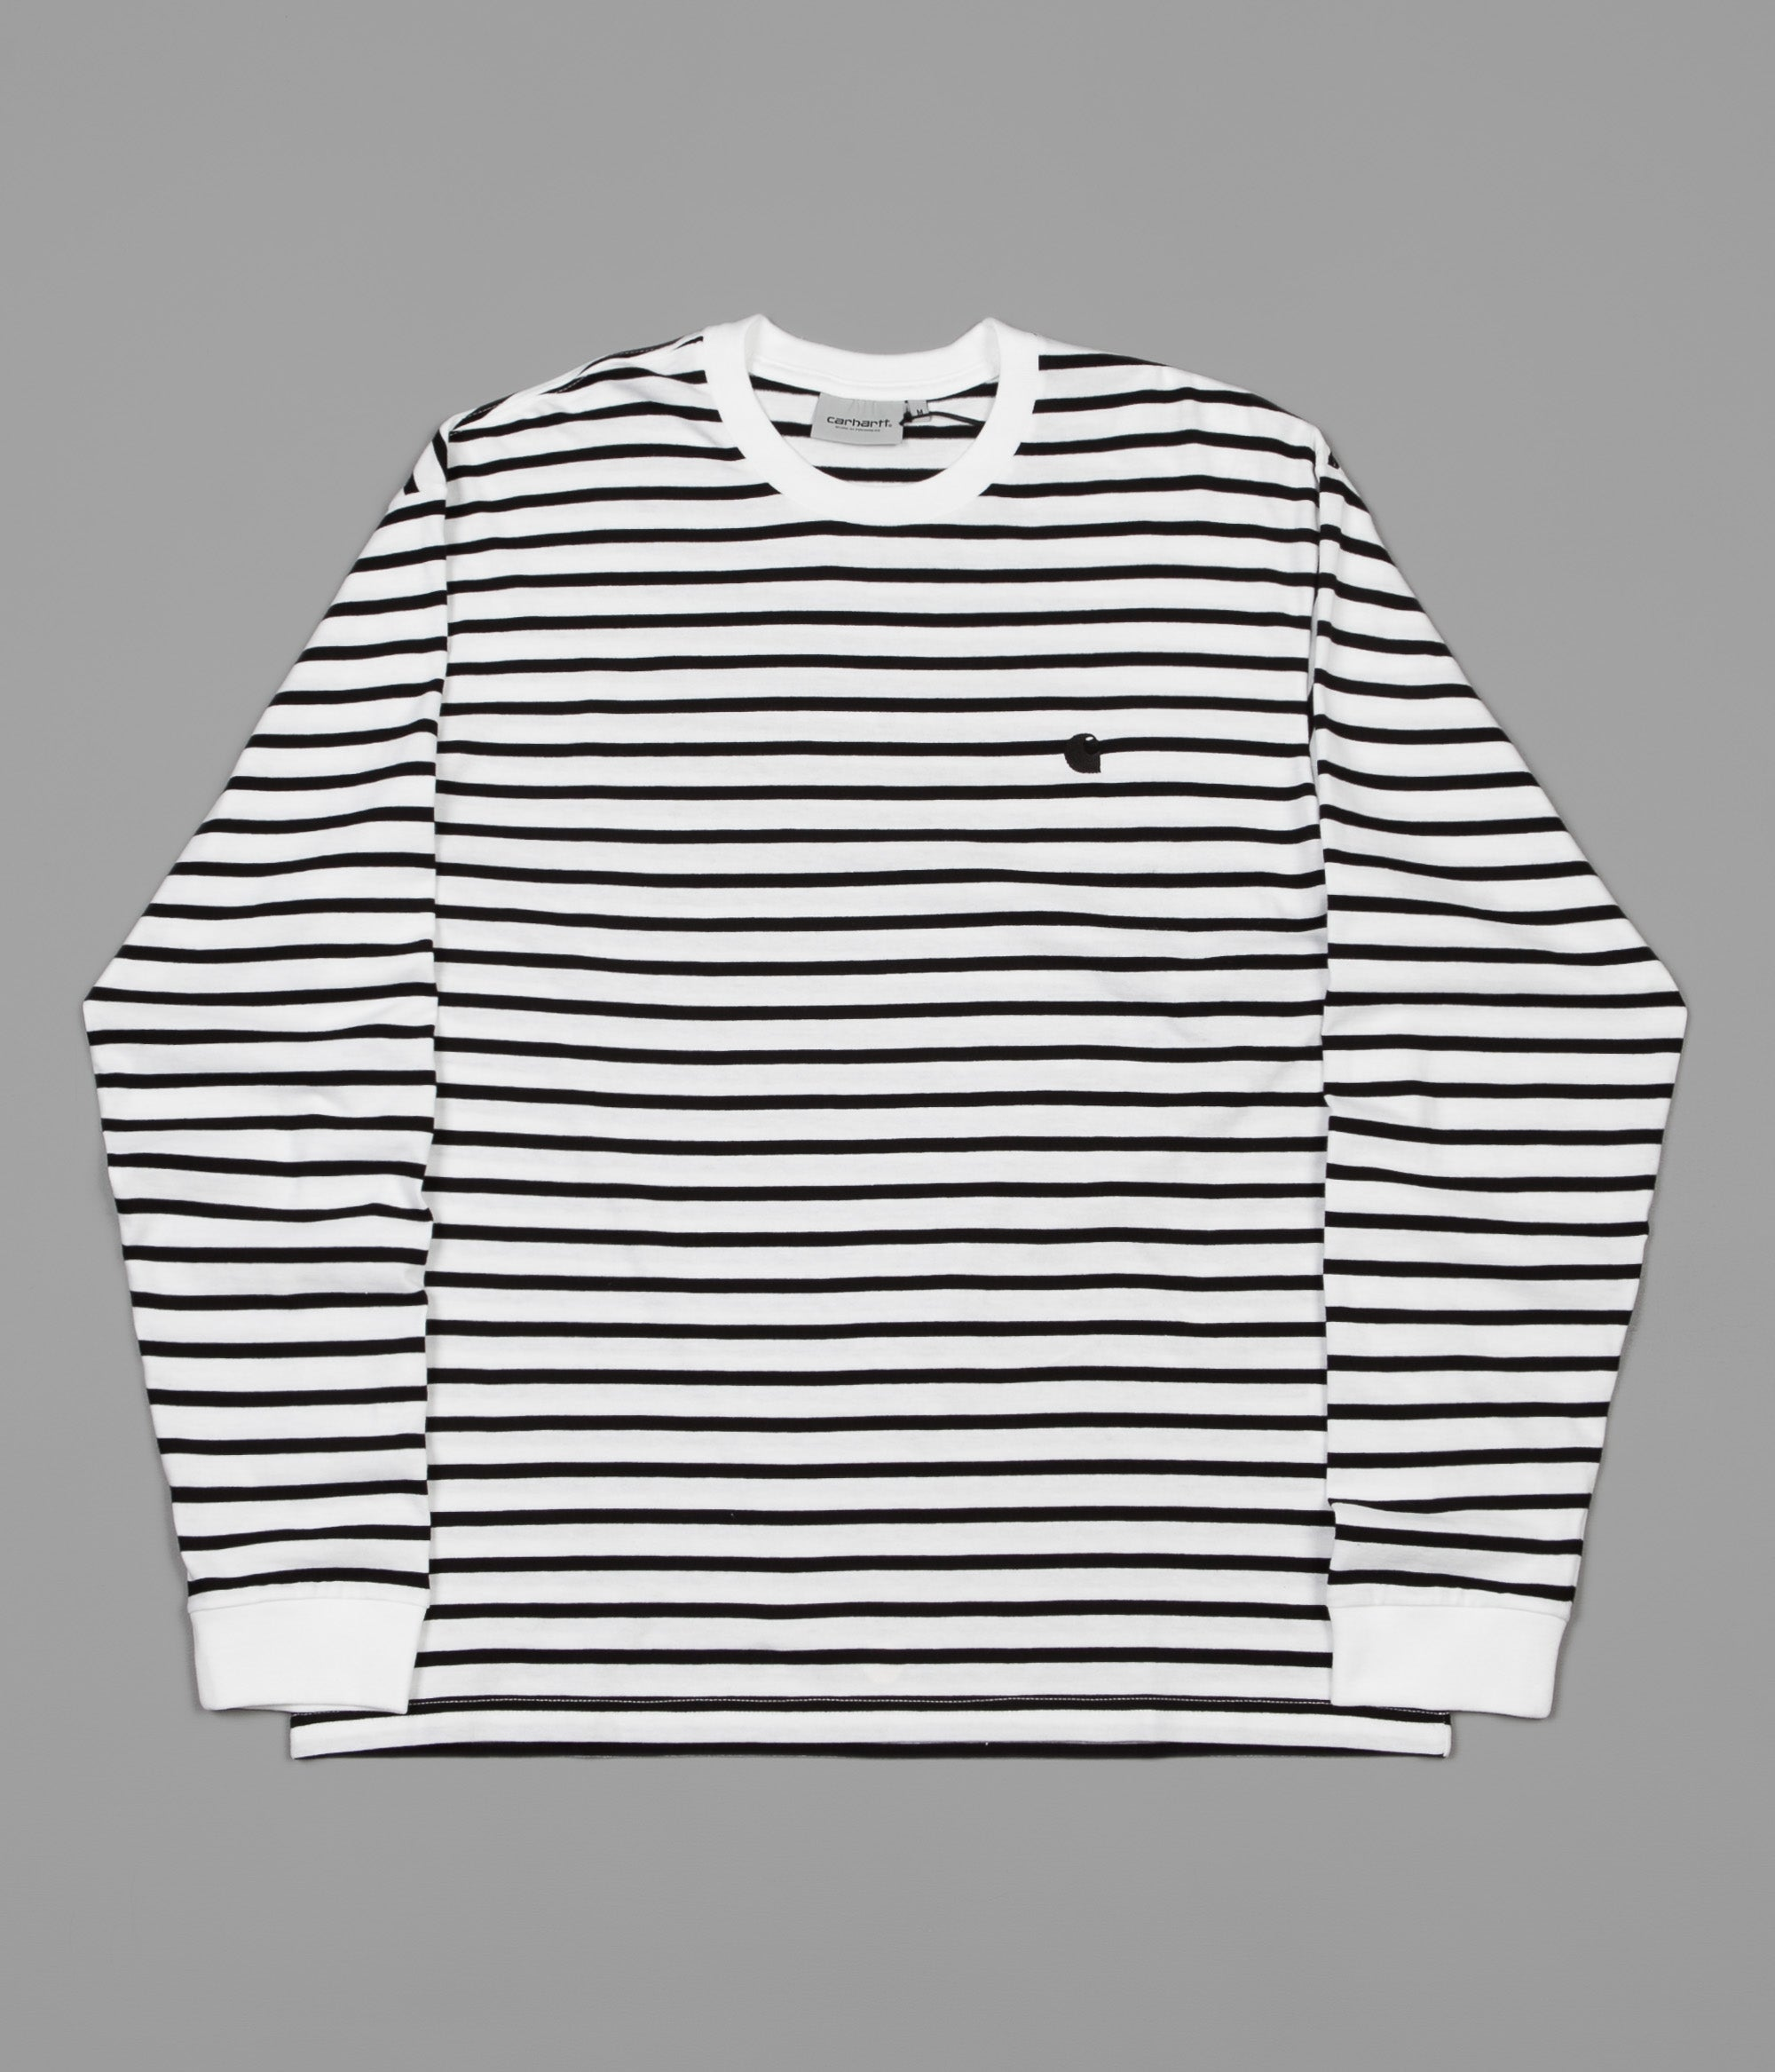 Carhartt Champ Long Sleeve T-Shirt - Black / White / Black